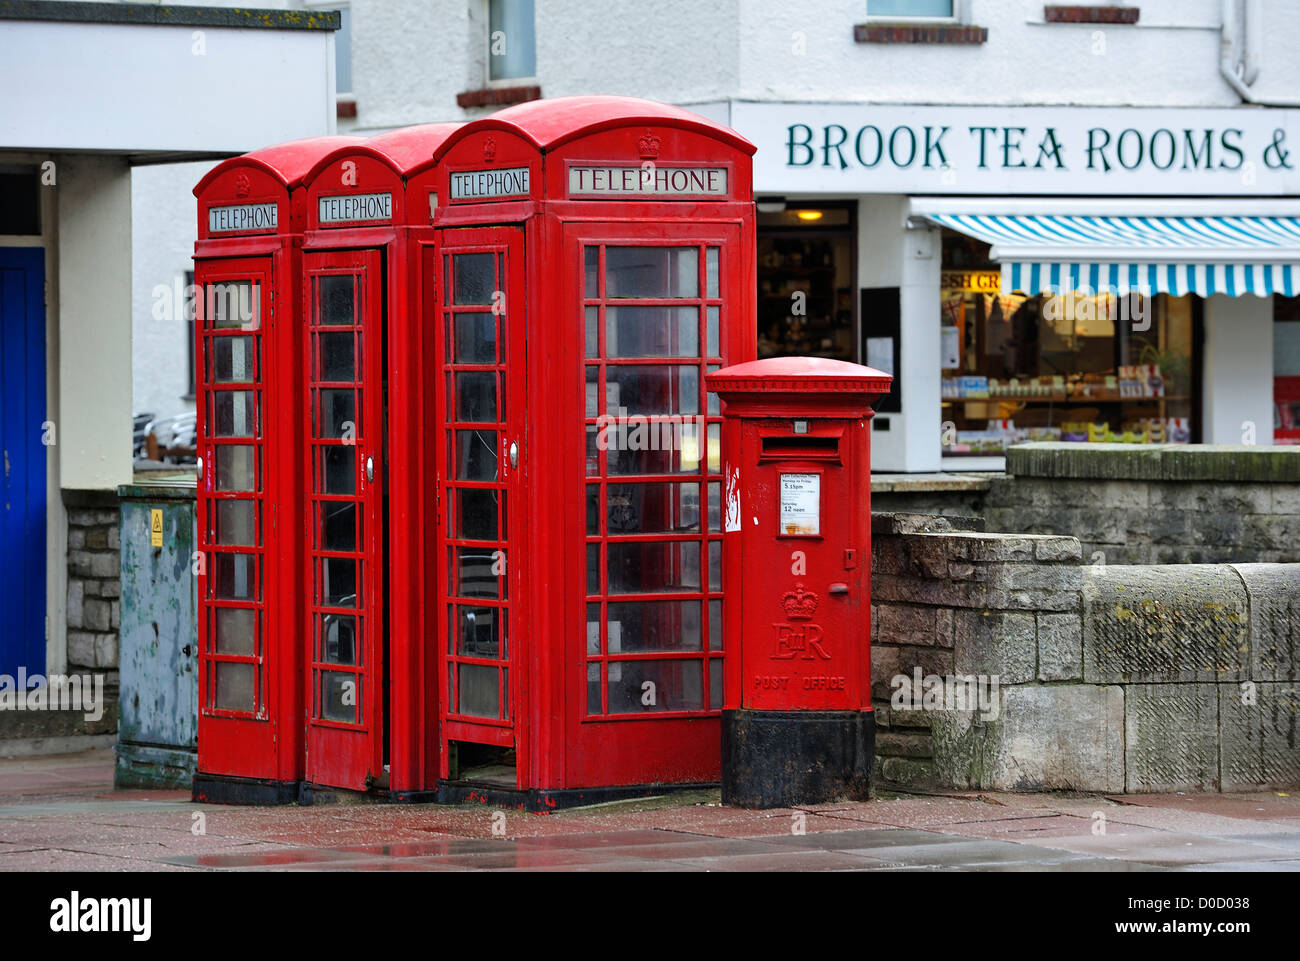 Traditional English red telephone boxes and postoffice pillar box on pavement in city street in England, UK - Stock Image